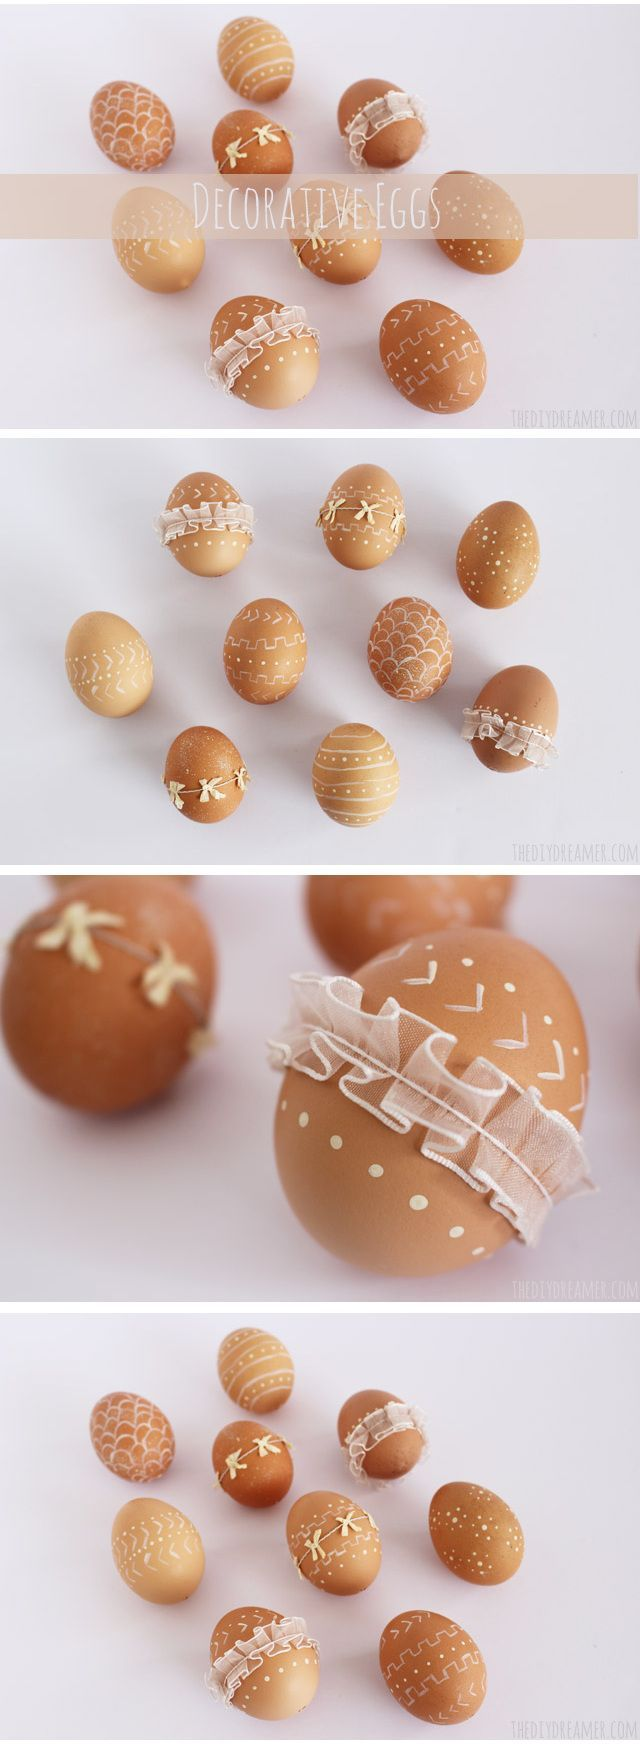 Decorative Eggs. Trendy Easter Eggs decorated with paint and ribbon. Perfect decorative Easter eggs for a Rustic Easter. Such a fun DIY craft! #easter #eastereggs #eastercrafts #rustic